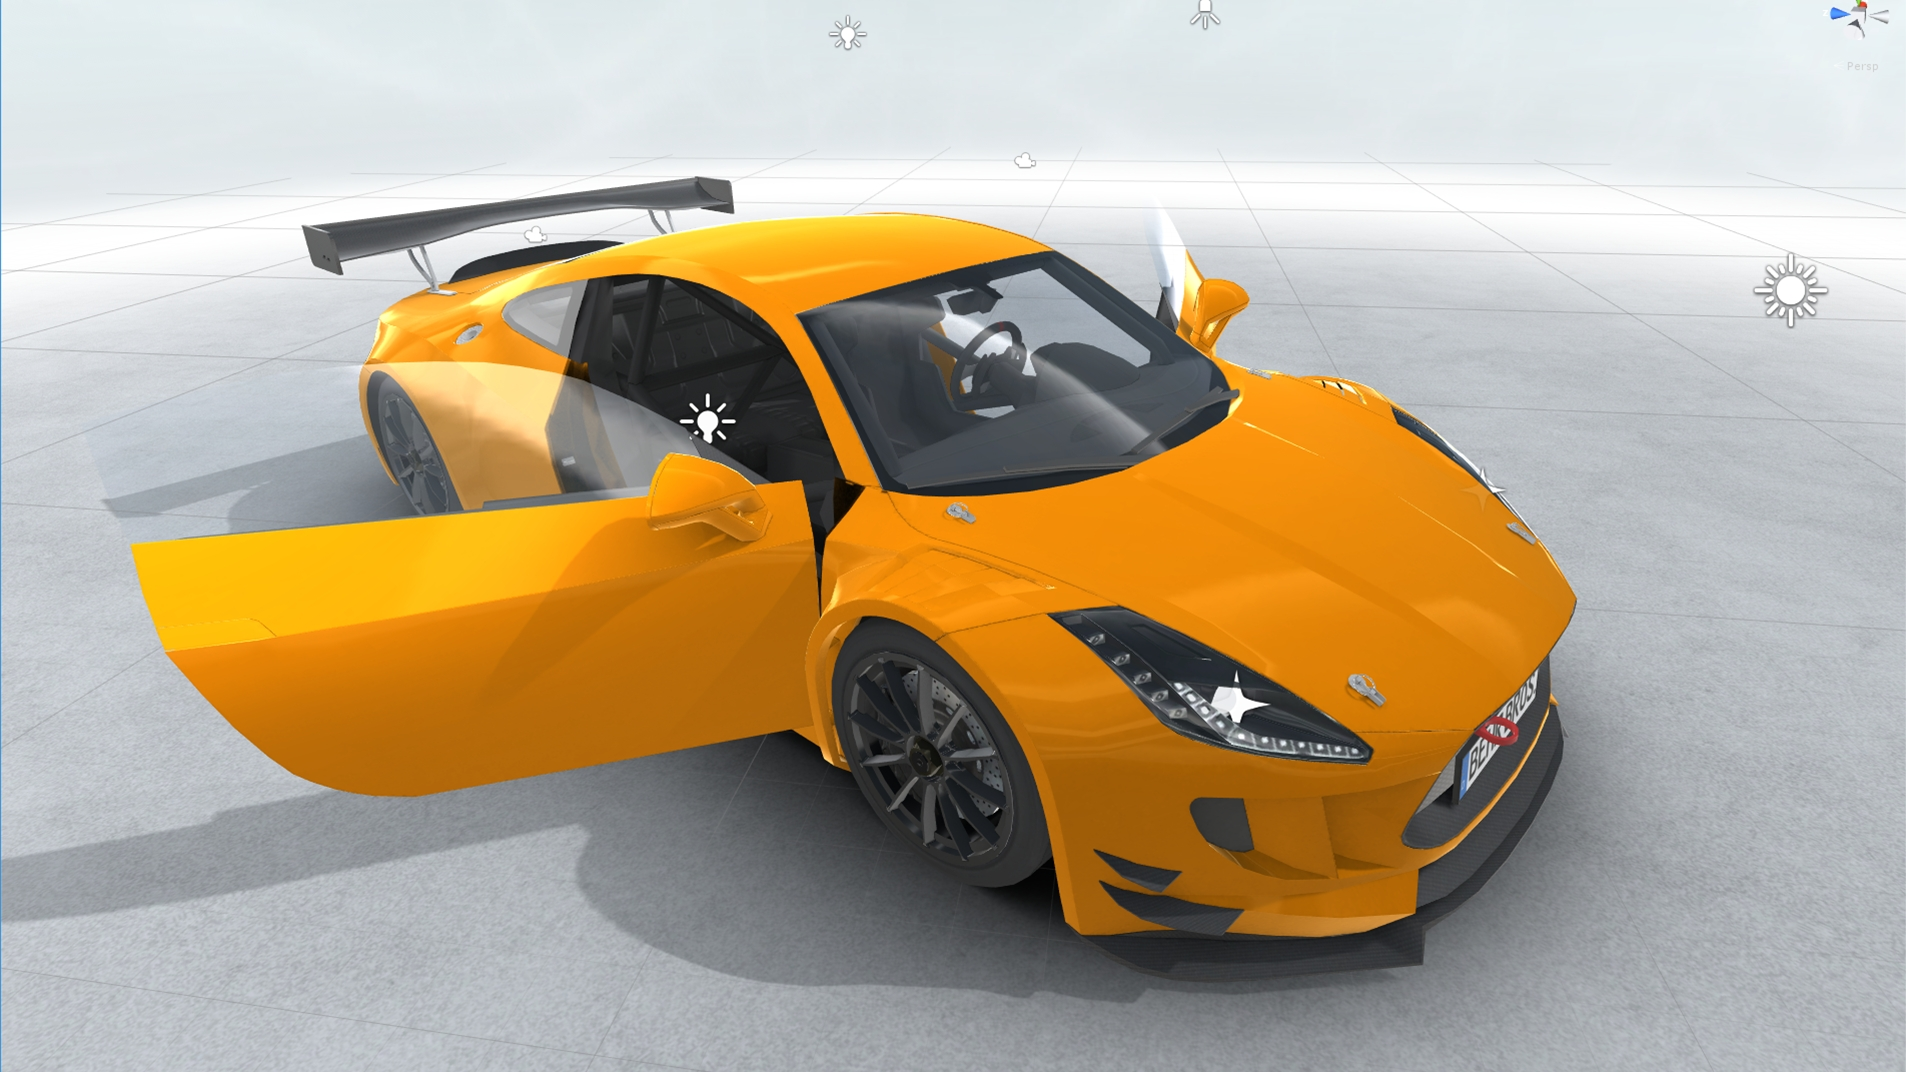 generic sports car gt3 realtime 3d model 3ds max fbx c4d lwo ma mb other obj 223731